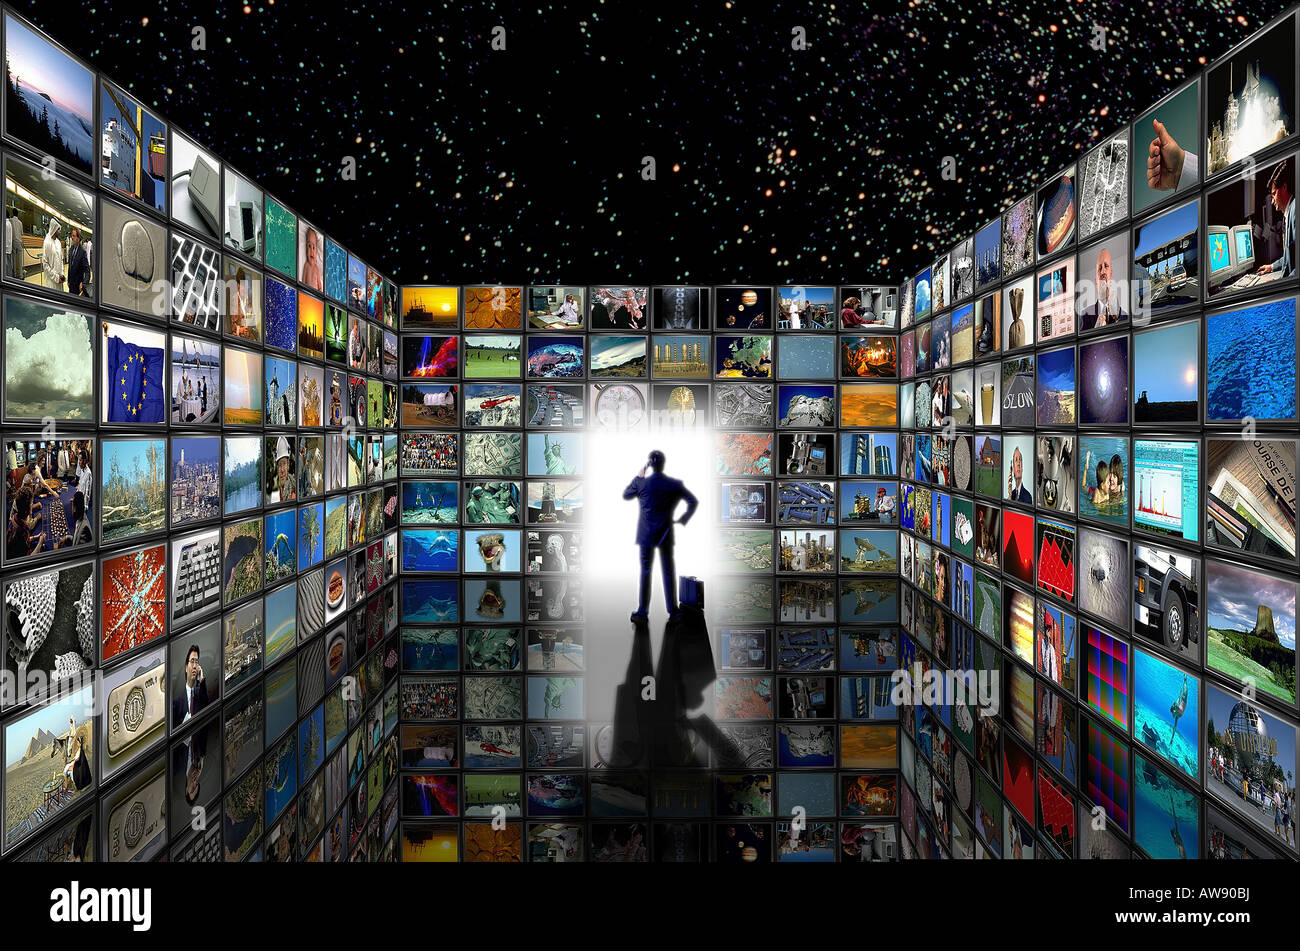 man in room of TV screens with many images - Stock Image